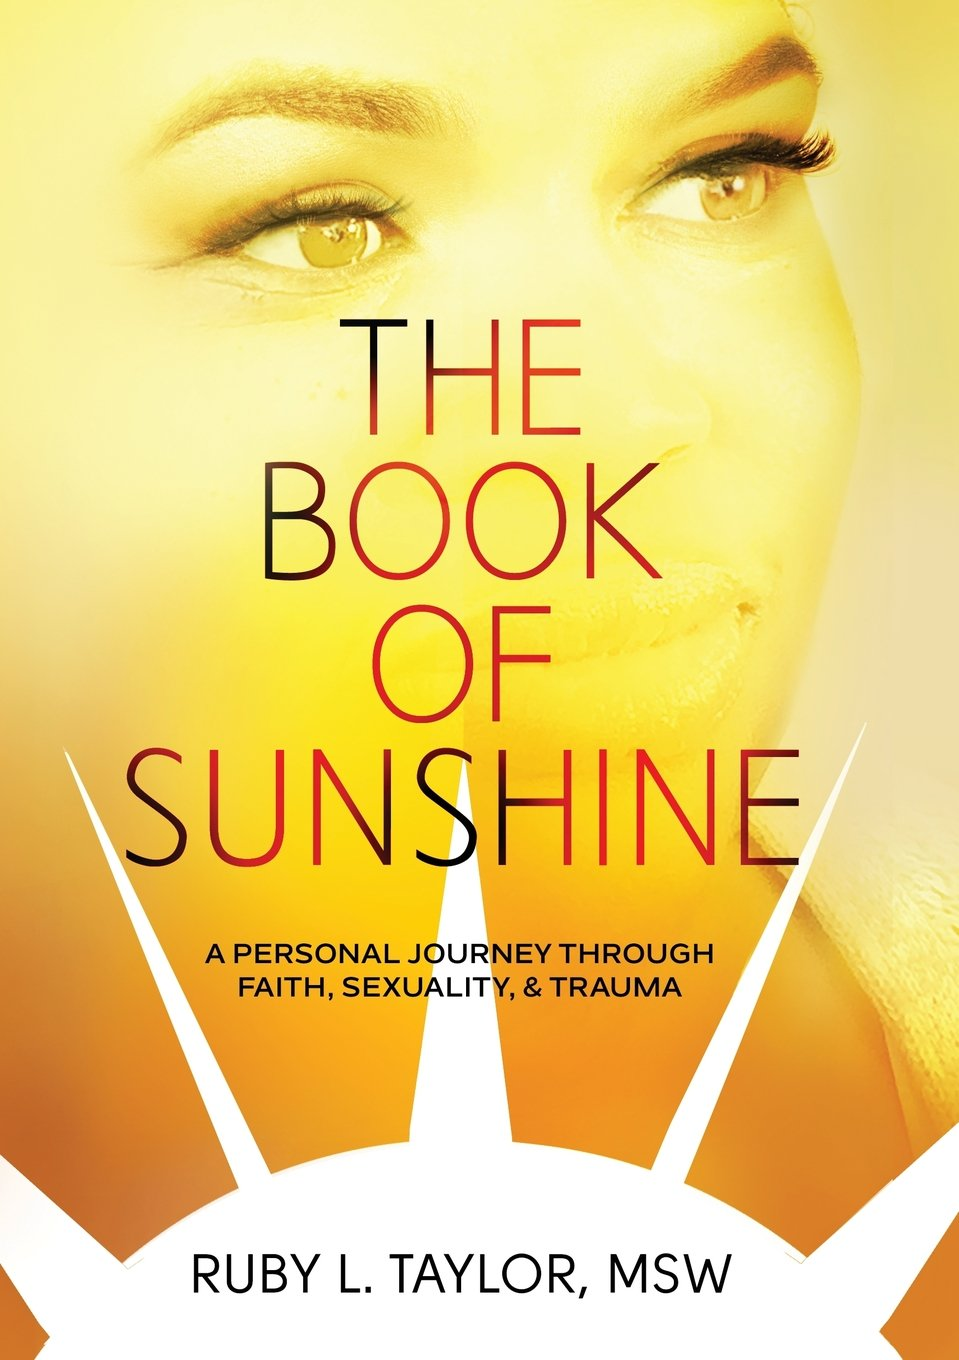 THE BOOK OF SUNSHINE: A Personal Journey Through Faith, Sexuality, Trauma